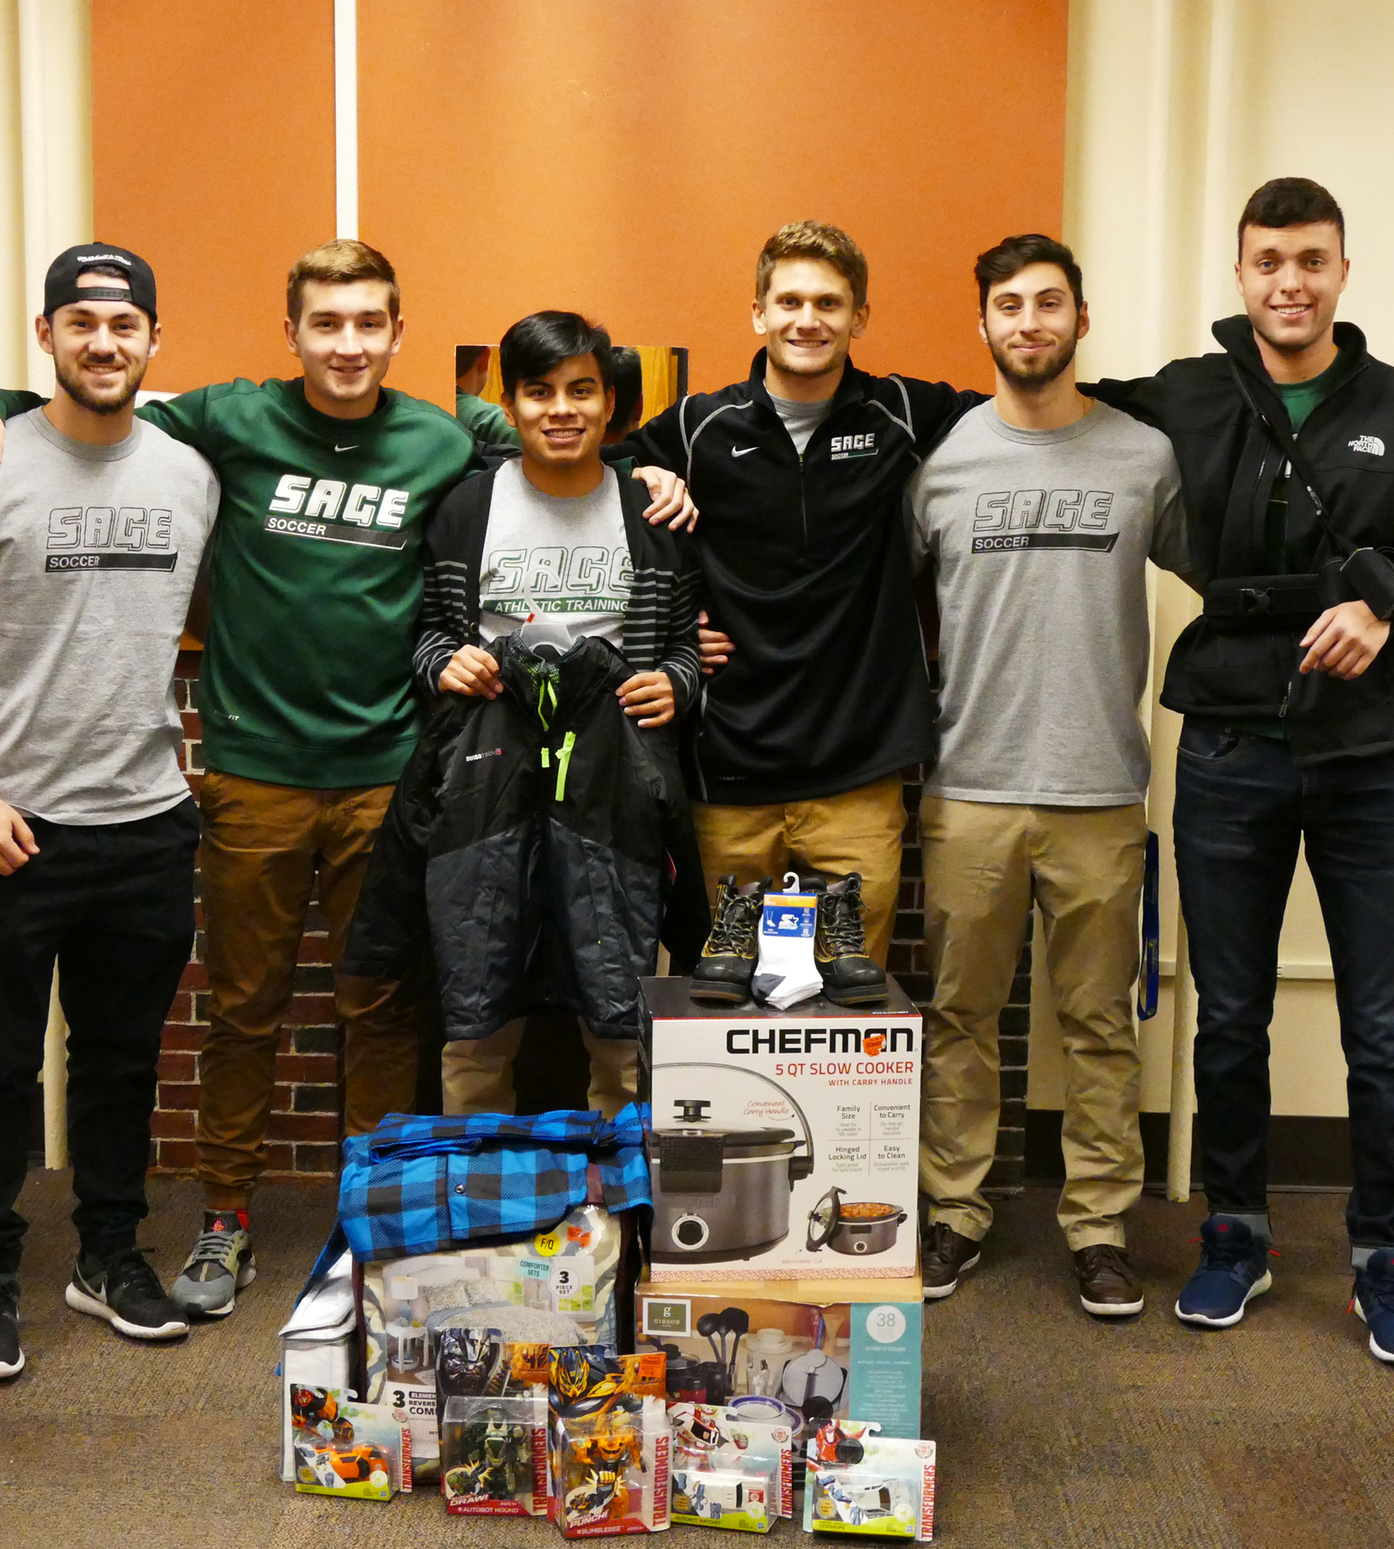 Sage Men's Soccer Adopts Local Family for the Holidays